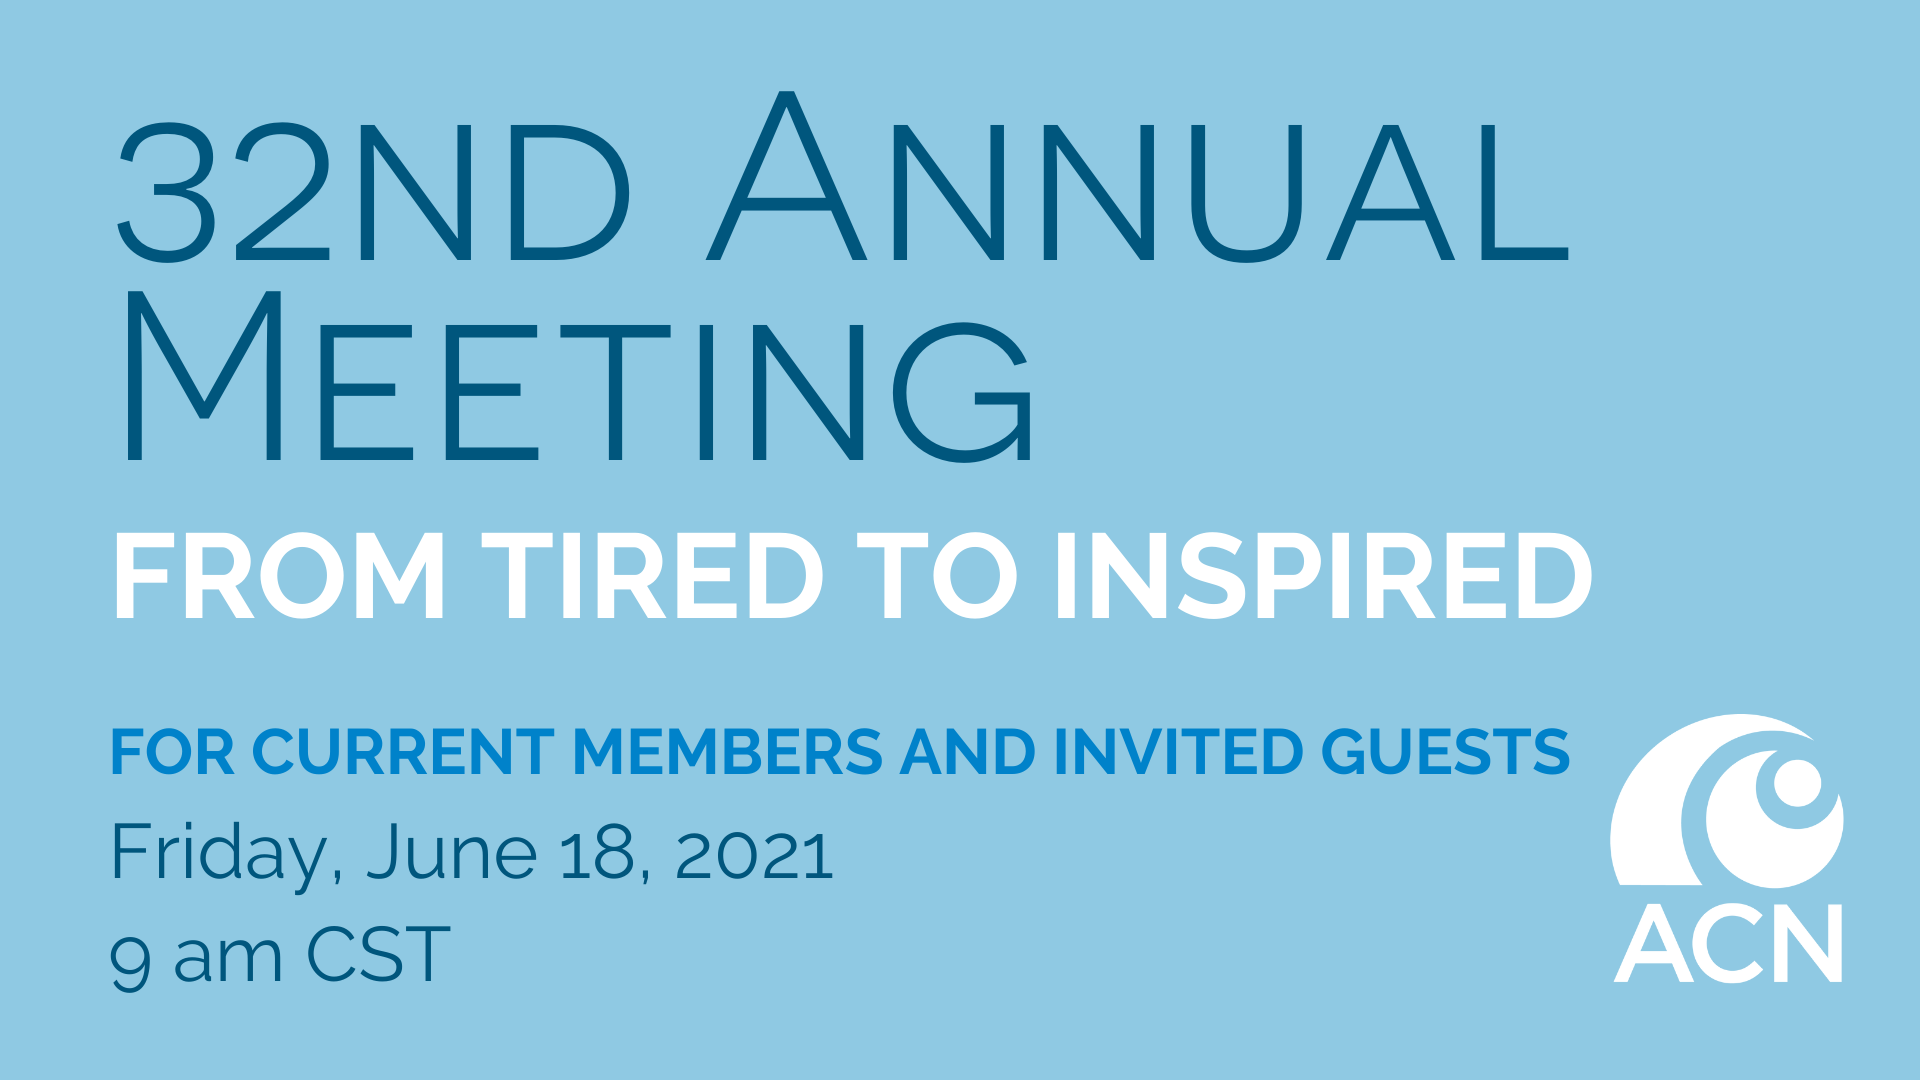 32nd Annual Meeting - From Tired to Inspired - June 18 9am